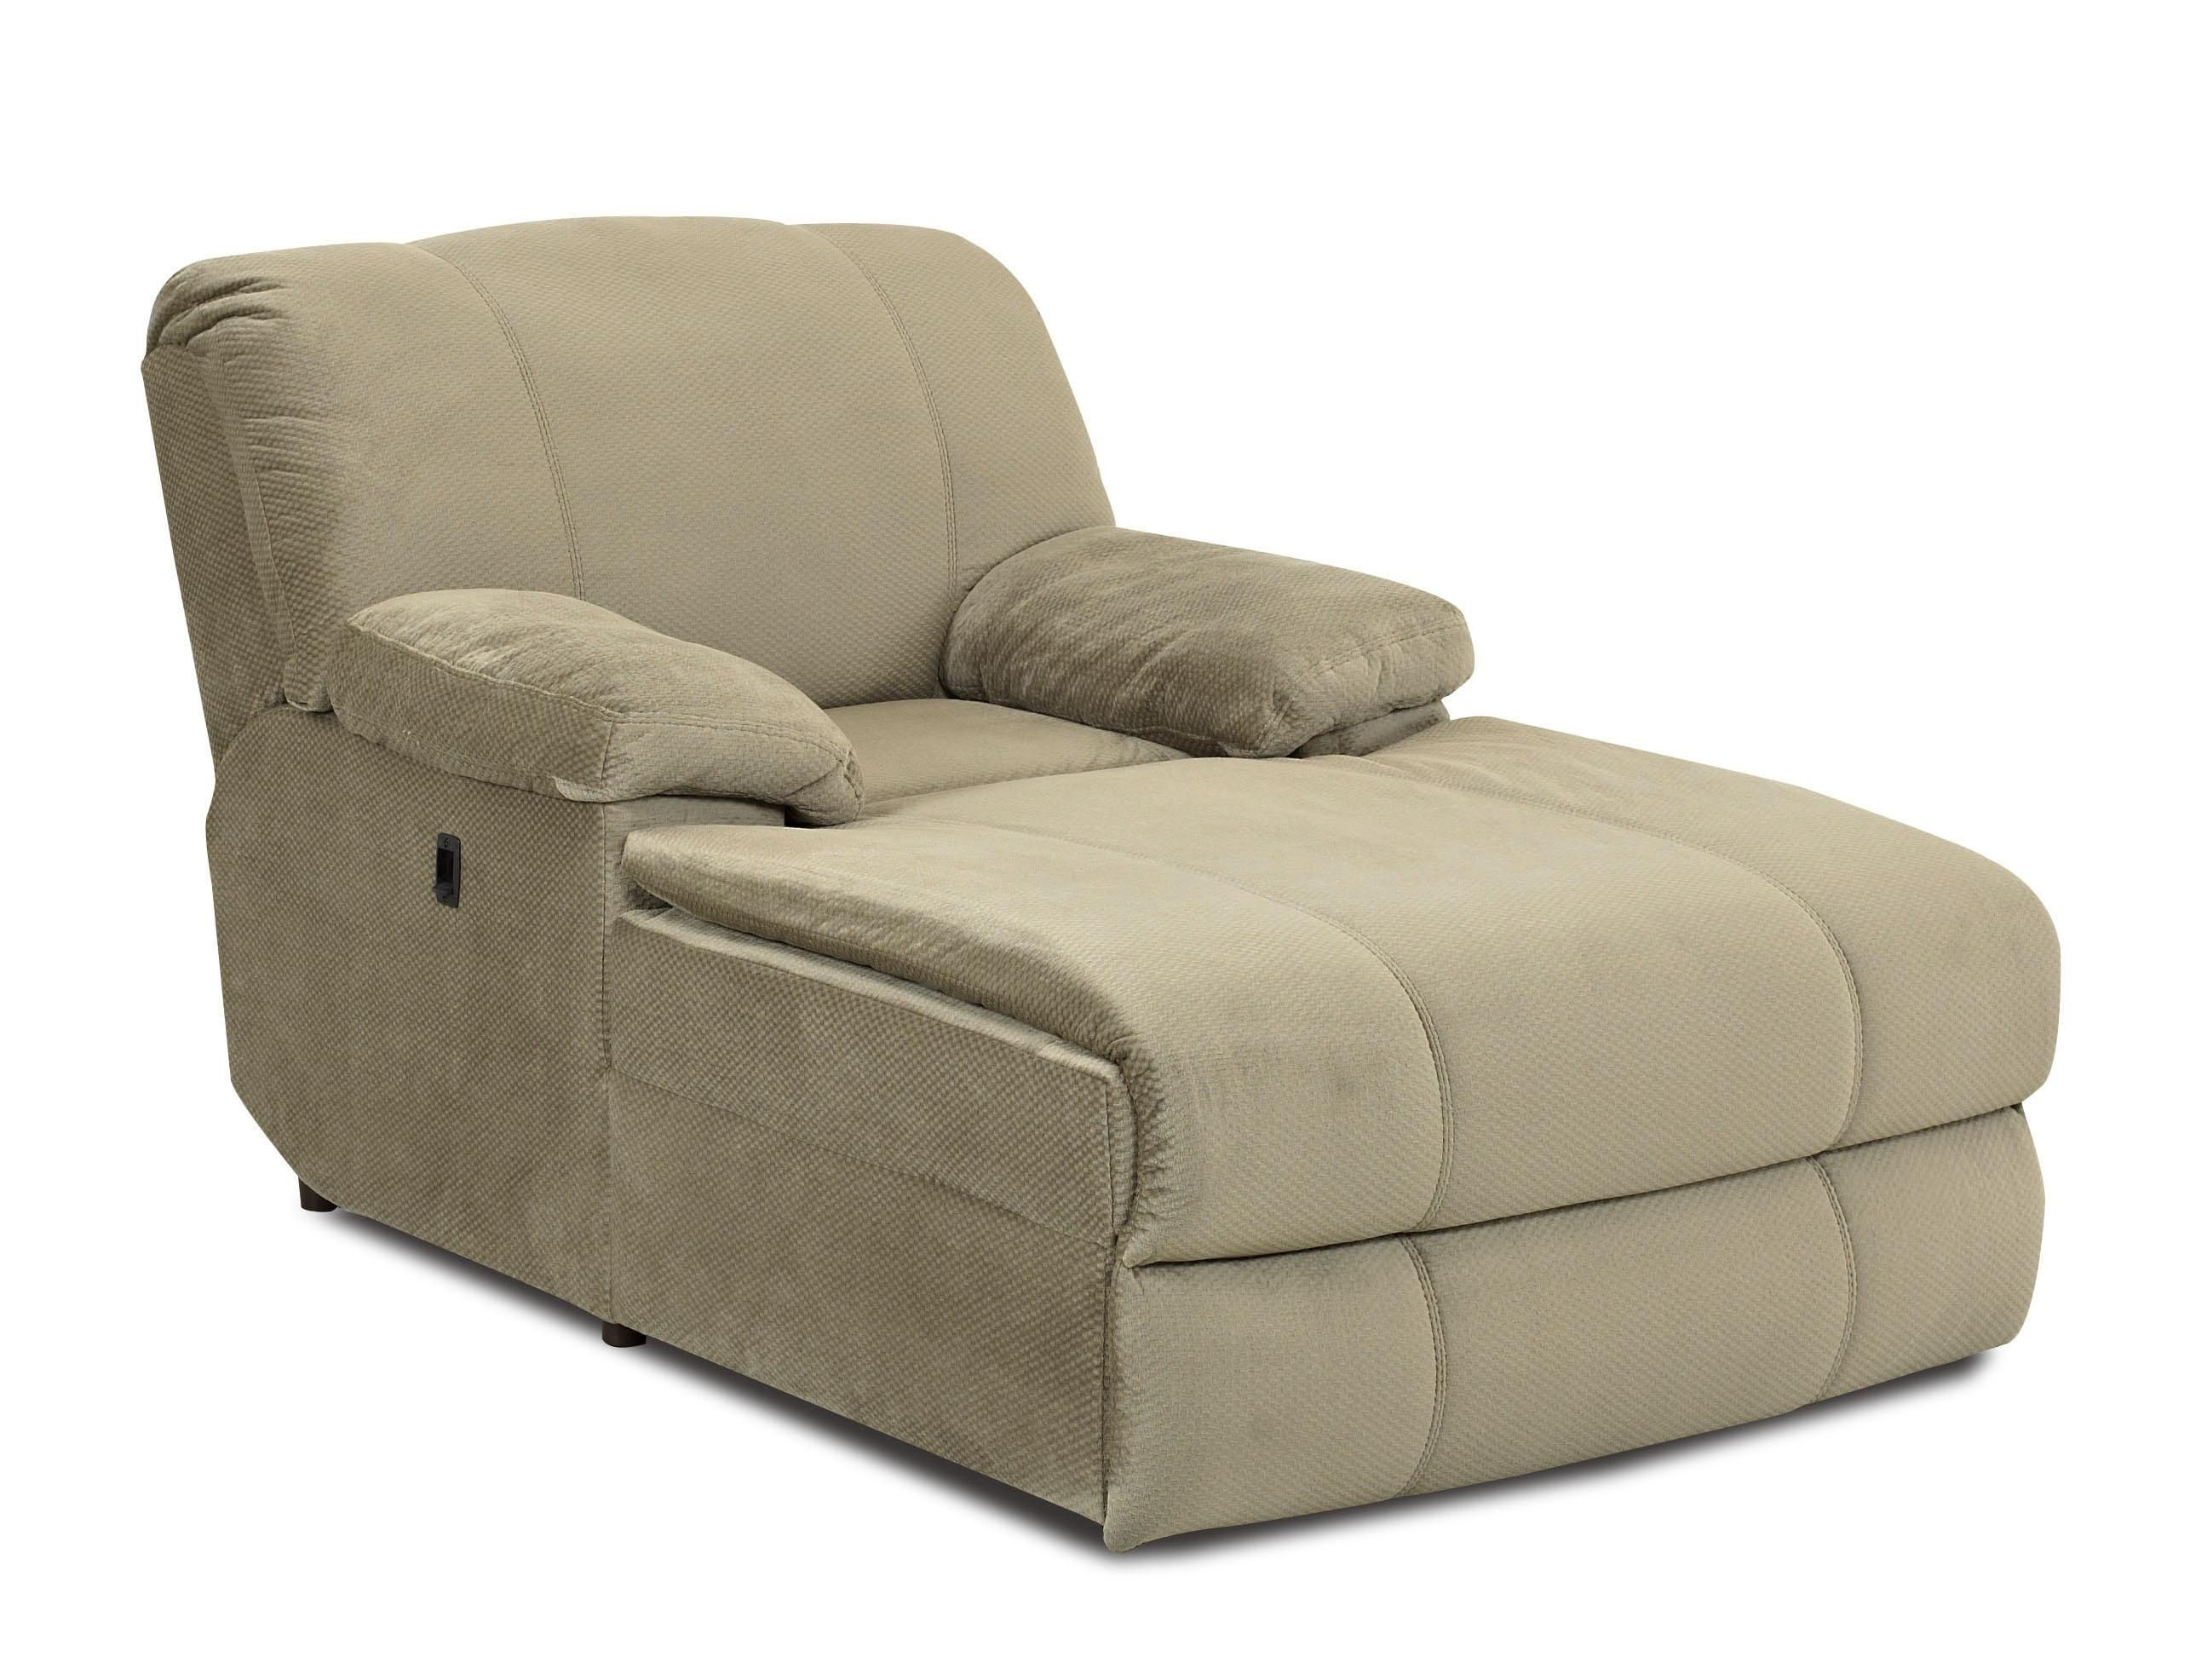 Kensington Chaise Sofa Bed Brocade Fabric Reclining Lounge By Ellis Home